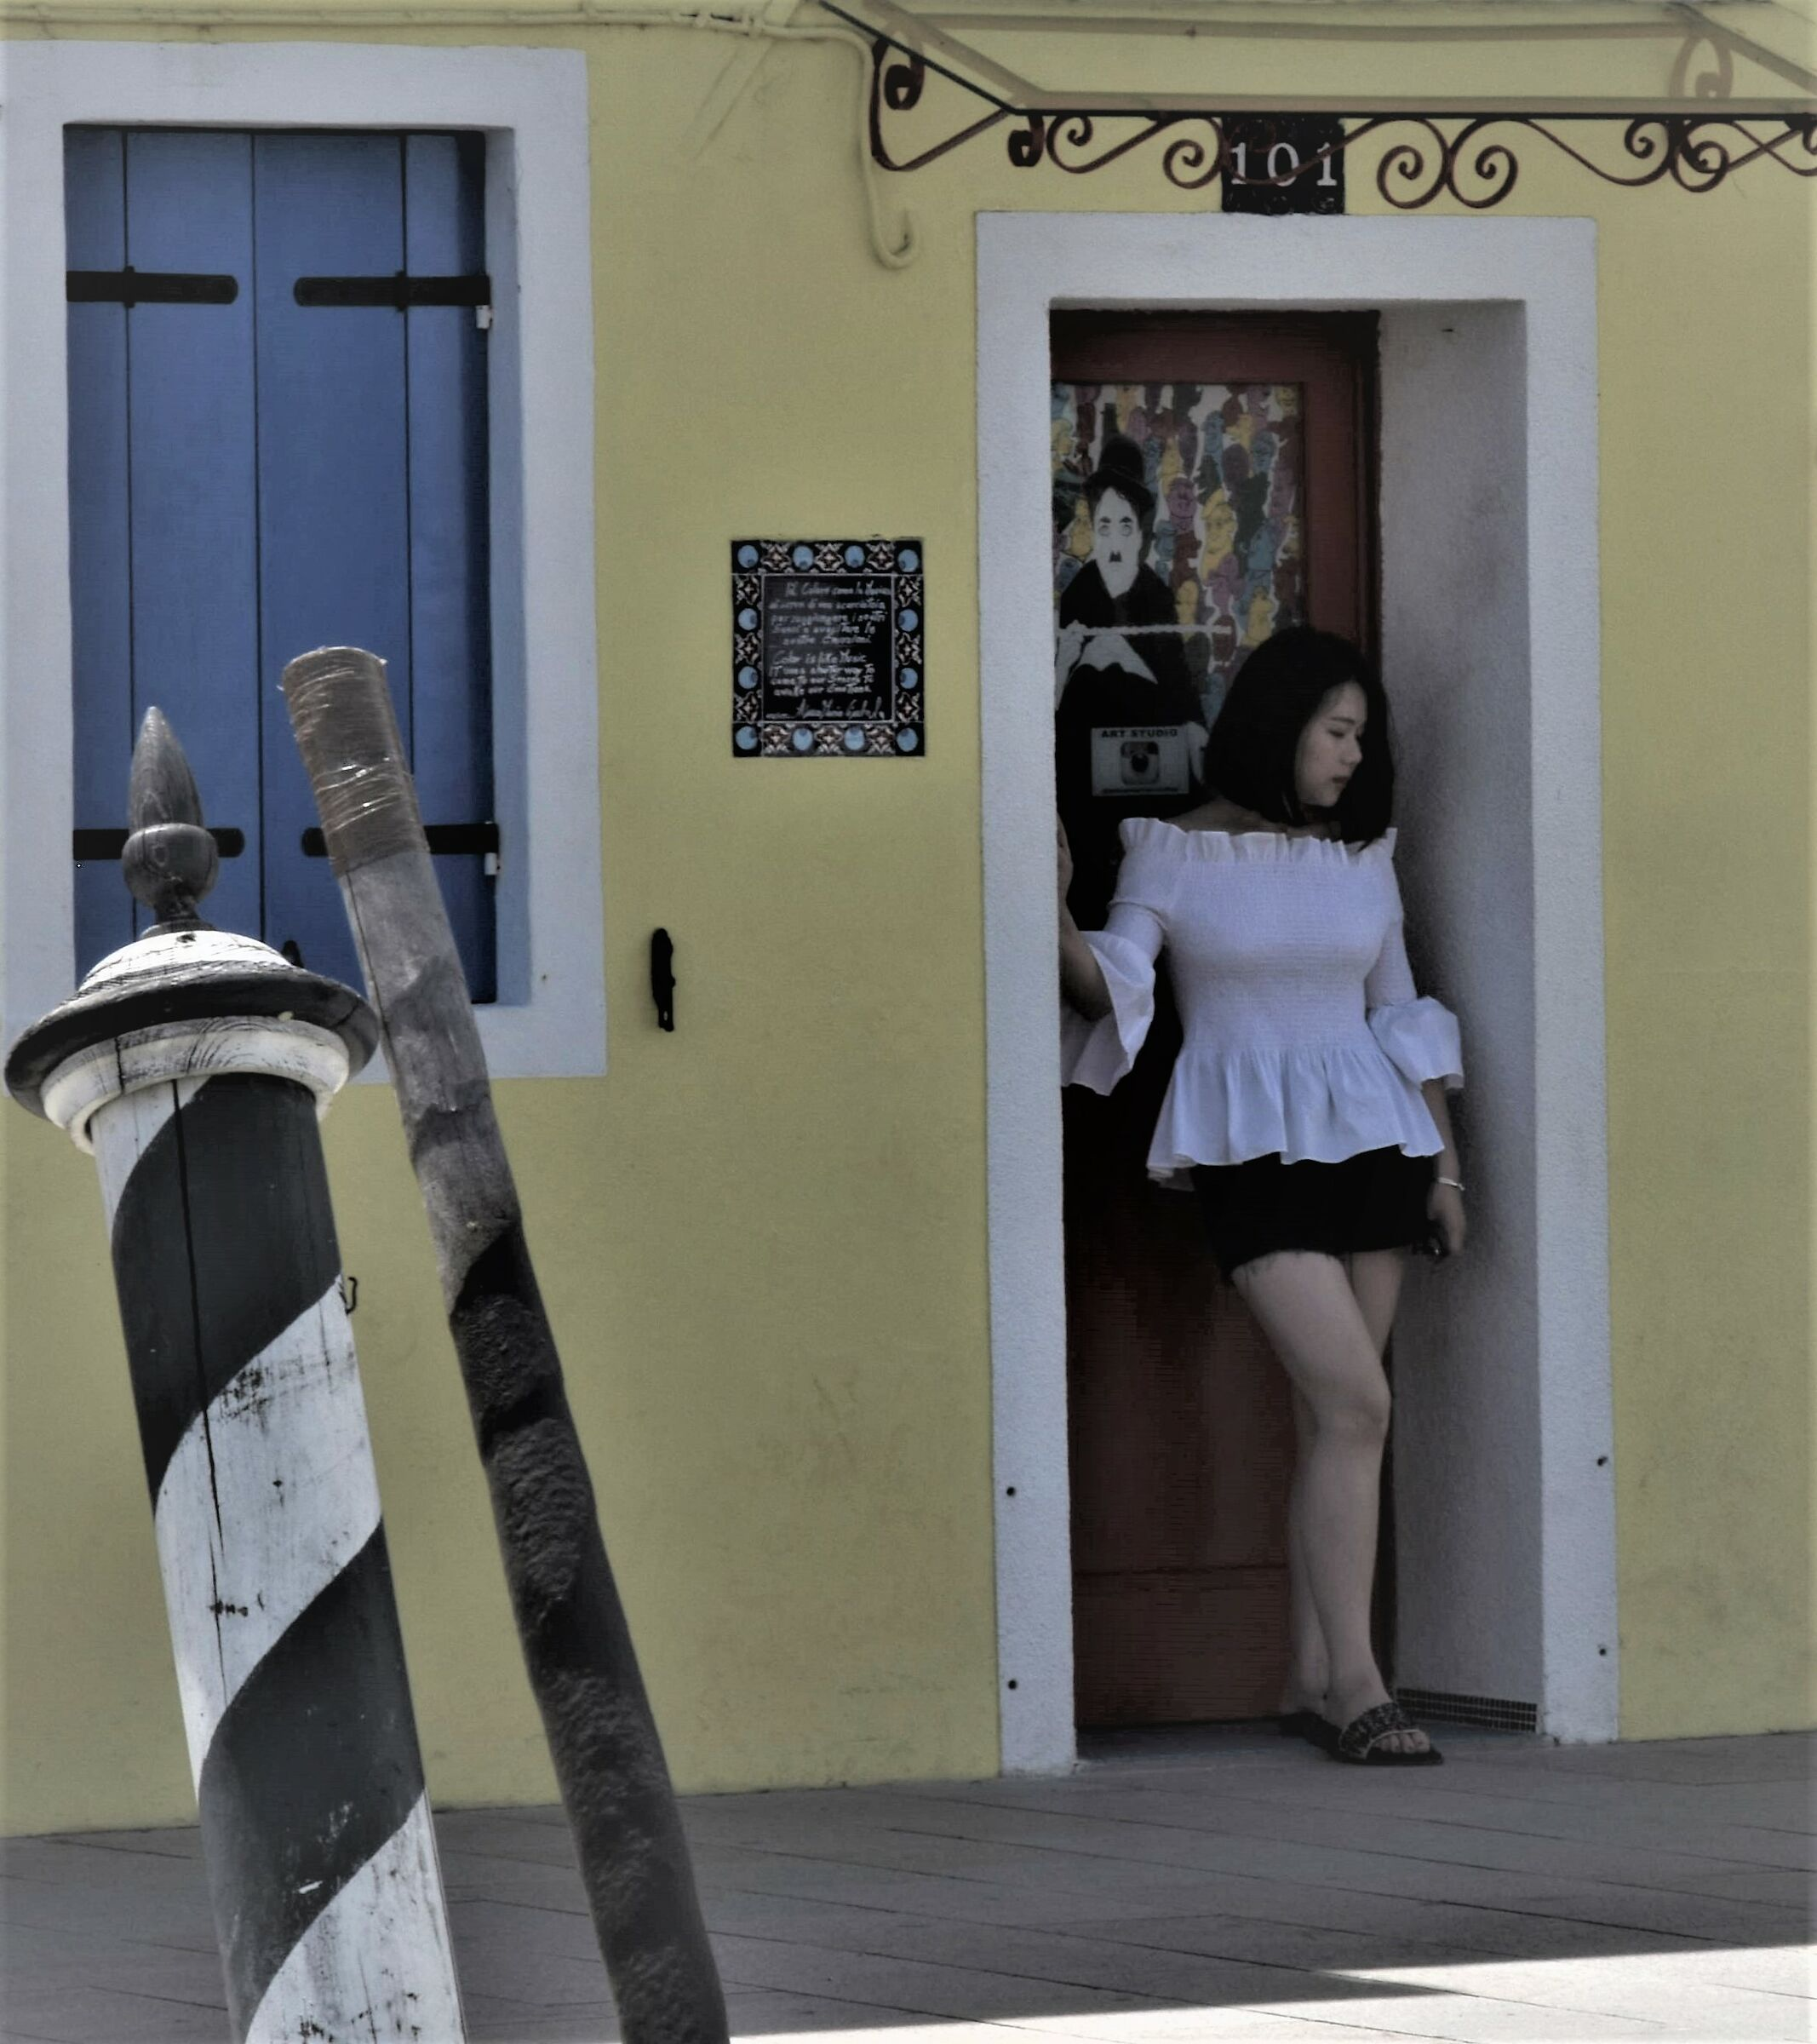 a portrait of the East in Burano...